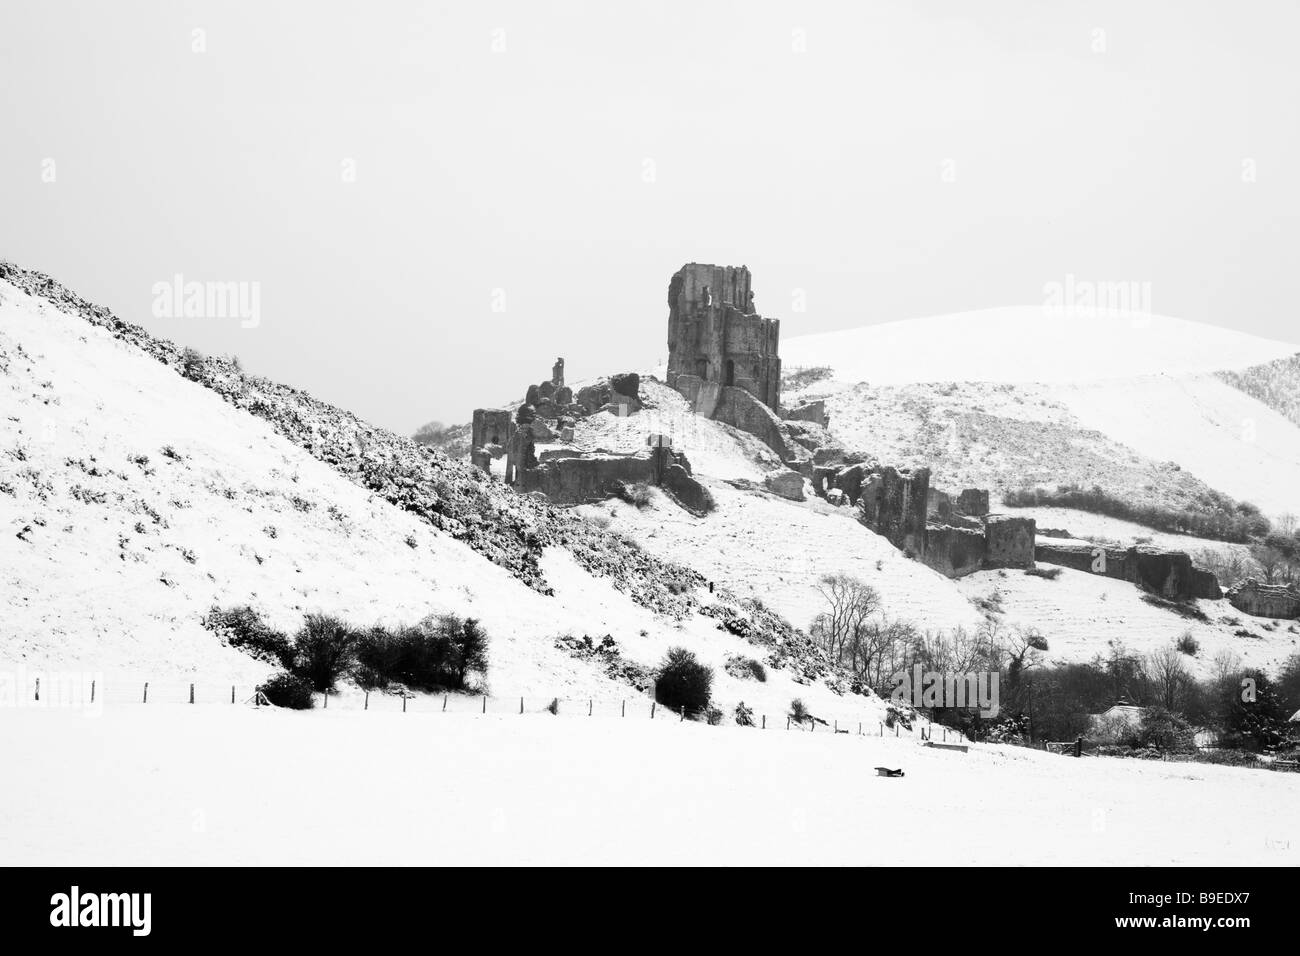 A rare fall of snow covers the Dorset landscape around the ruins of Corfe Castle - Stock Image